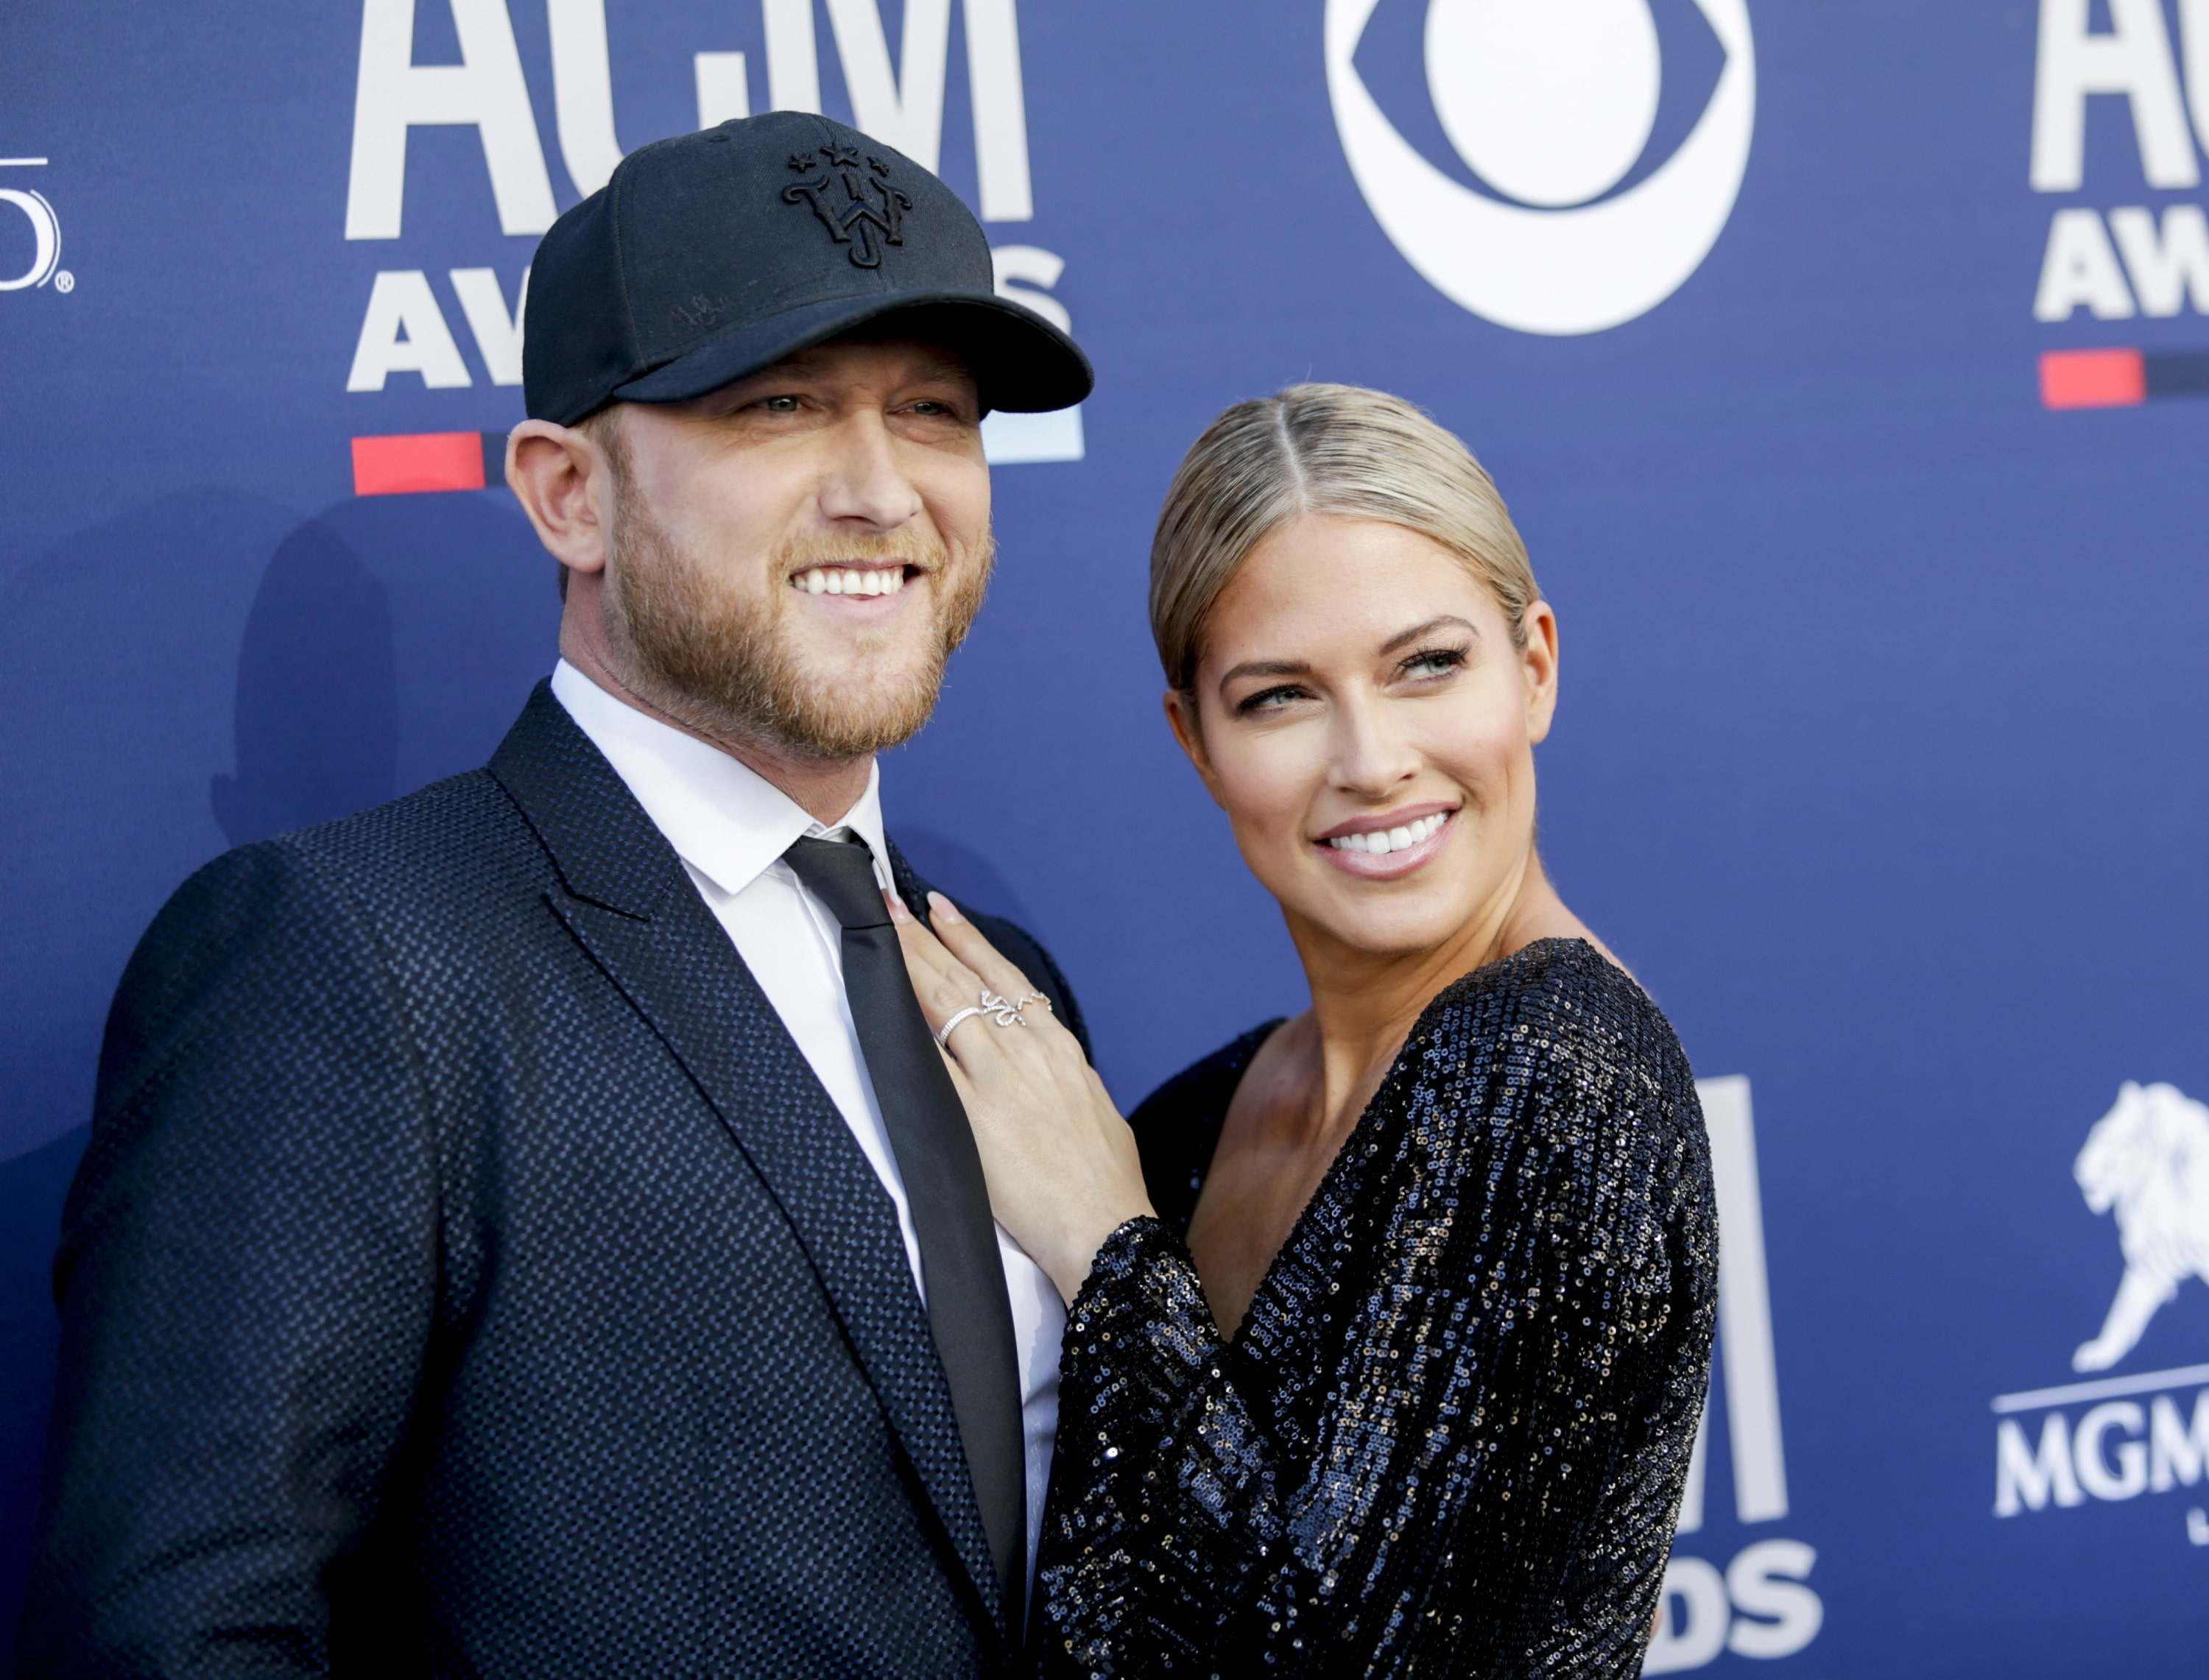 Cole Swindell and Barbie Blank attends the 54TH ACADEMY OF COUNTRY MUSIC AWARDS, to broadcast LIVE from MGM Grand Garden Arena in Las Vegas Sunday, April 7, 2019 (8:00-11:00 PM, ET/delayed PT) on the CBS Television Network. Photo: Francis Specker/CBS ©2019 CBS Broadcasting, Inc. All Rights Reserved.